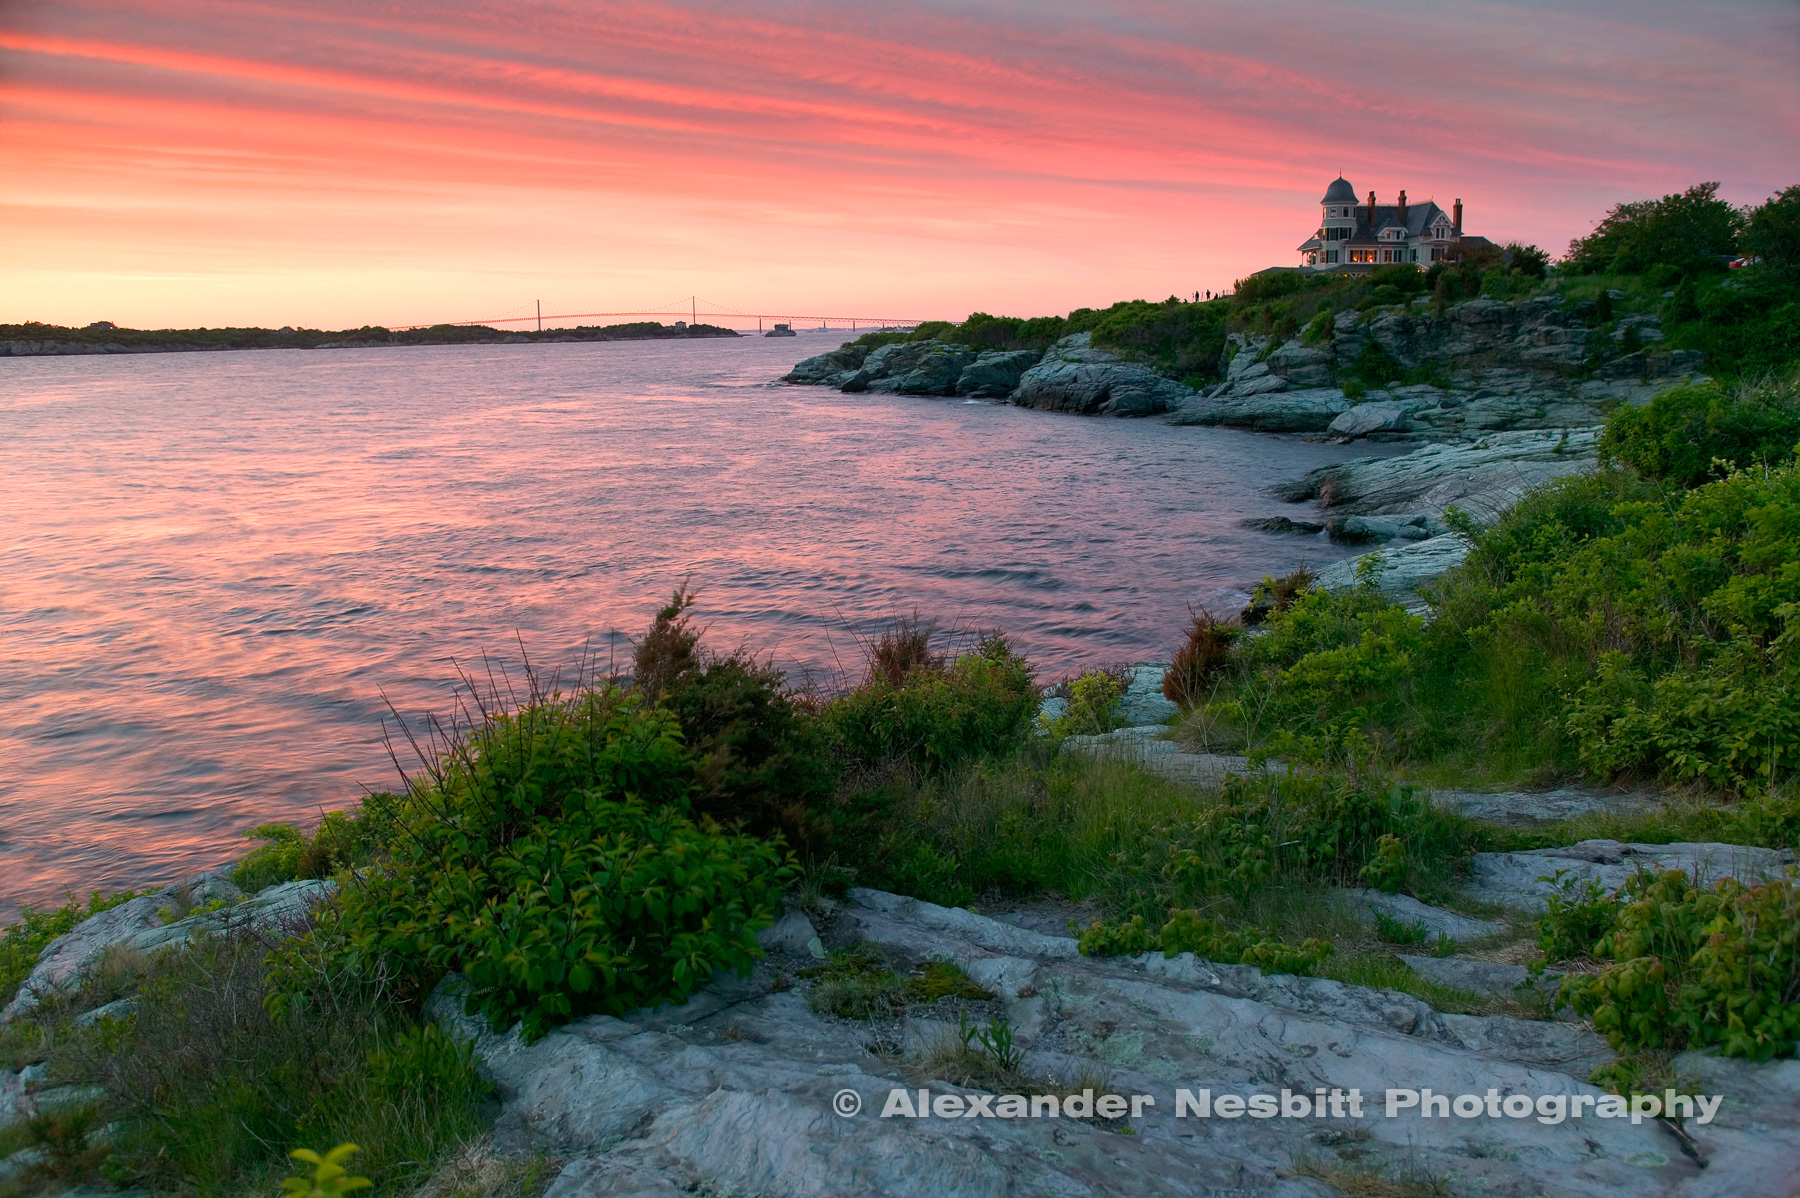 USA, Newport, RI - A gentle pink sunset at Castle Hill Inn and Resort with the view north up the east passage of Narragansett bay to the Newport Bridge. Viewed from near the lighthouse